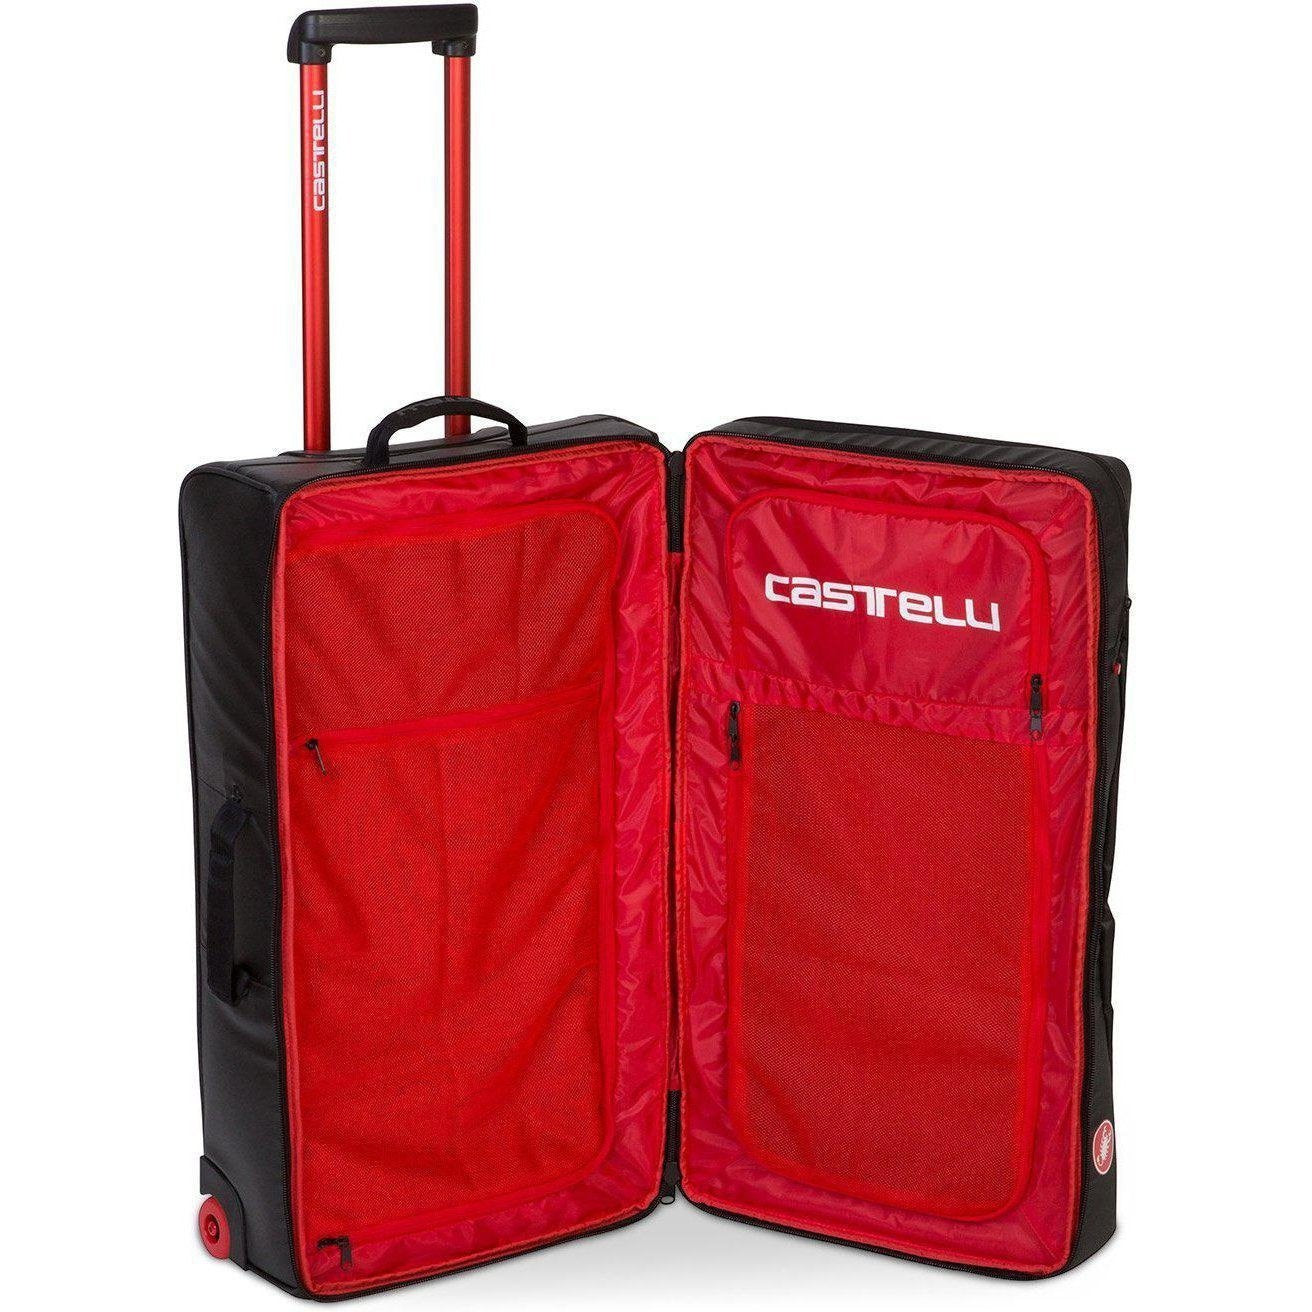 Castelli Extra Large Rolling Travel Bag